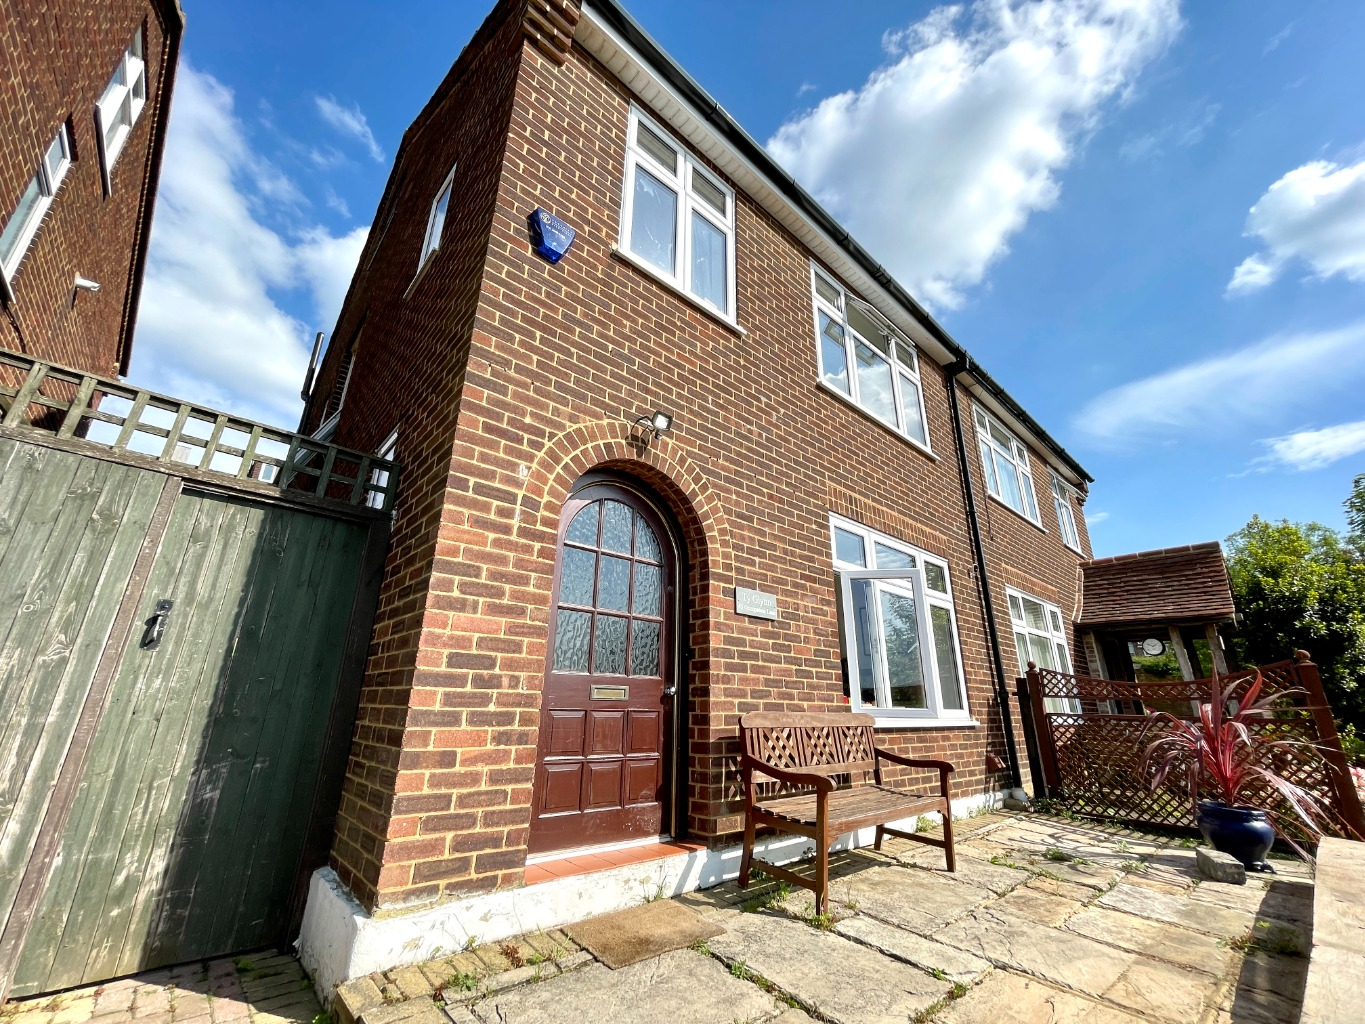 3 bed semi-detached house for sale in Occupation Lane, Shooters Hill - Property Image 1